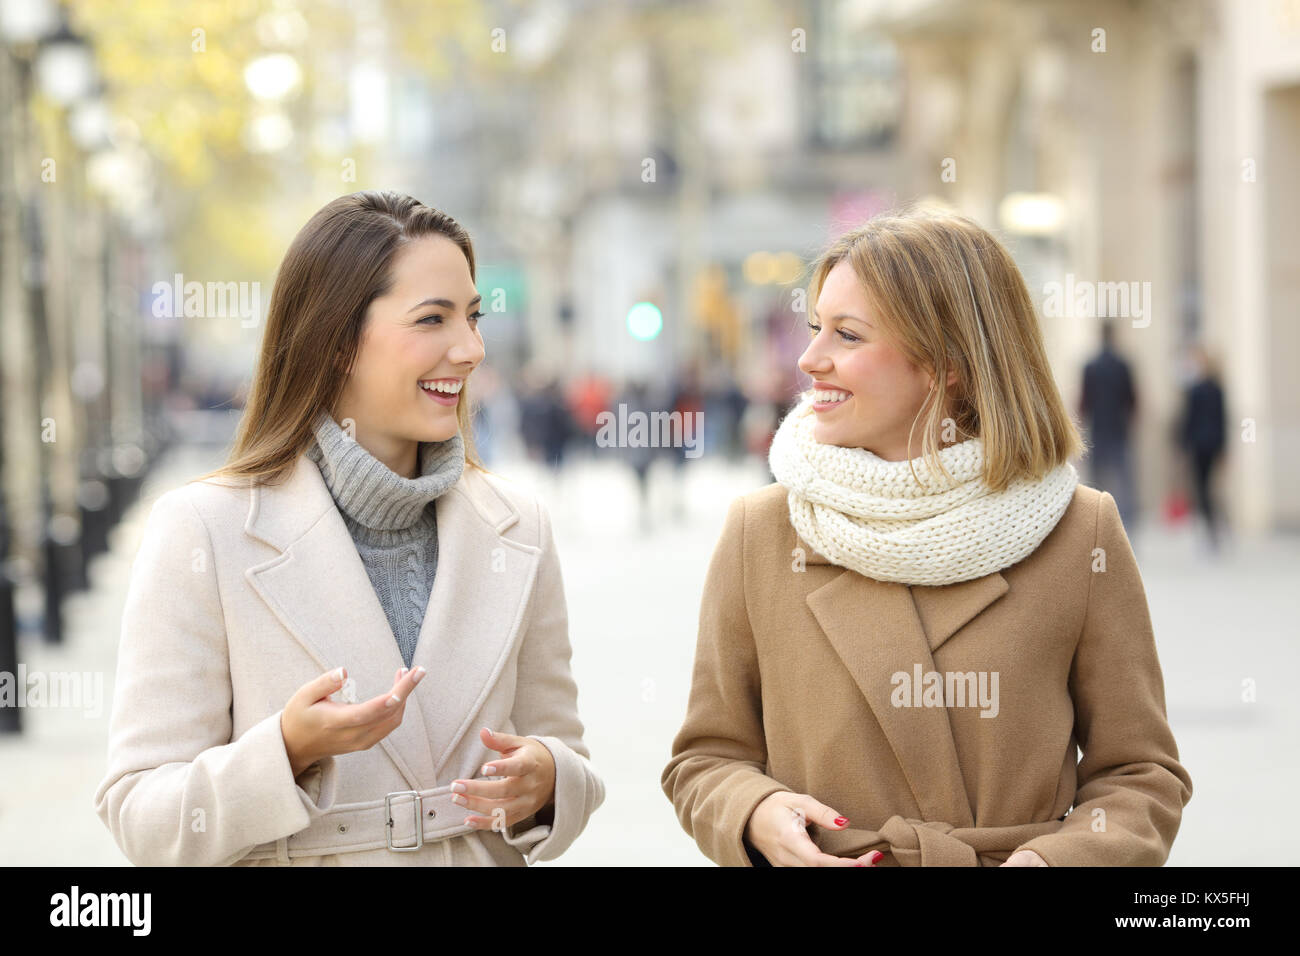 Front view portrait of two women friends wearing coats talking and walking on the street - Stock Image